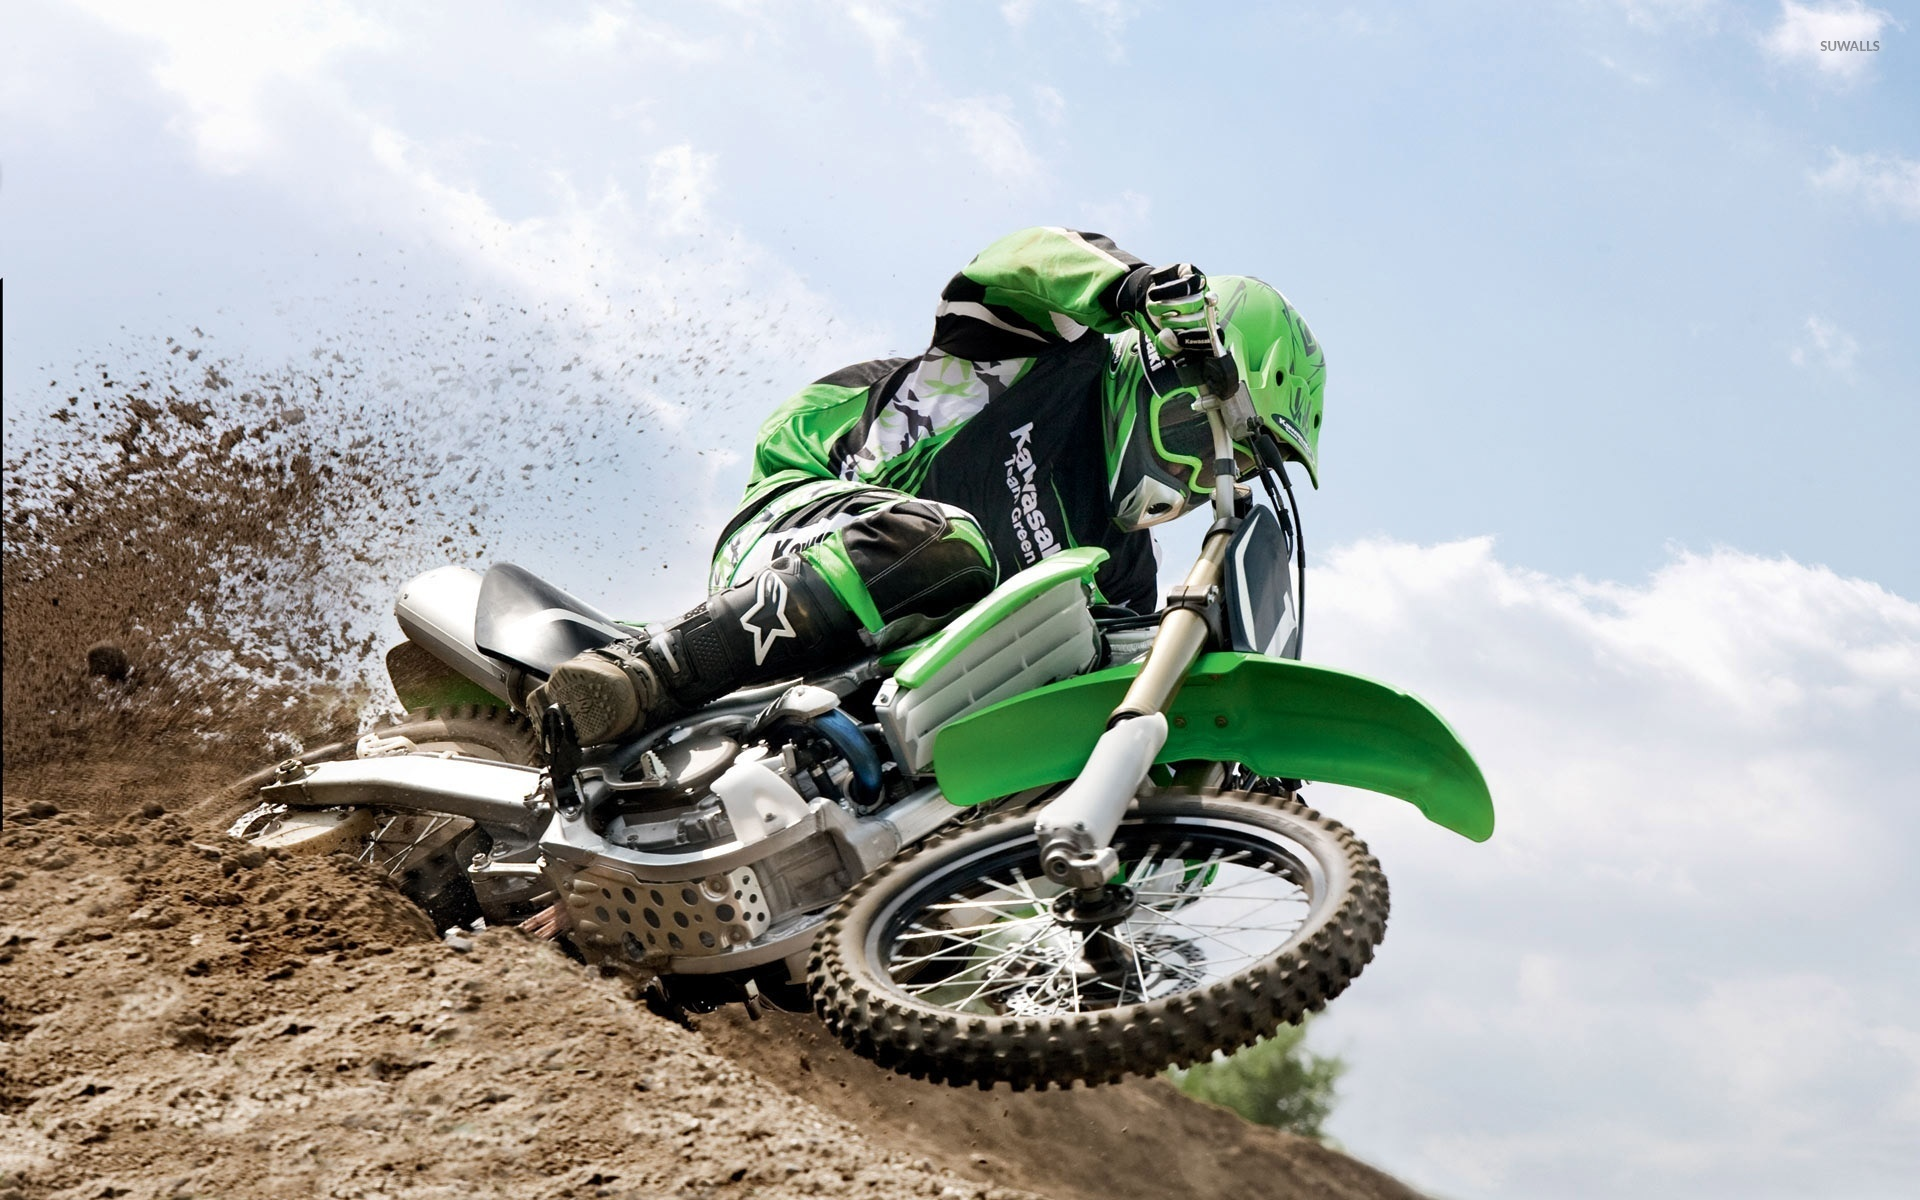 Kawasaki Kx450f 5 Wallpaper Motorcycle Wallpapers 23911